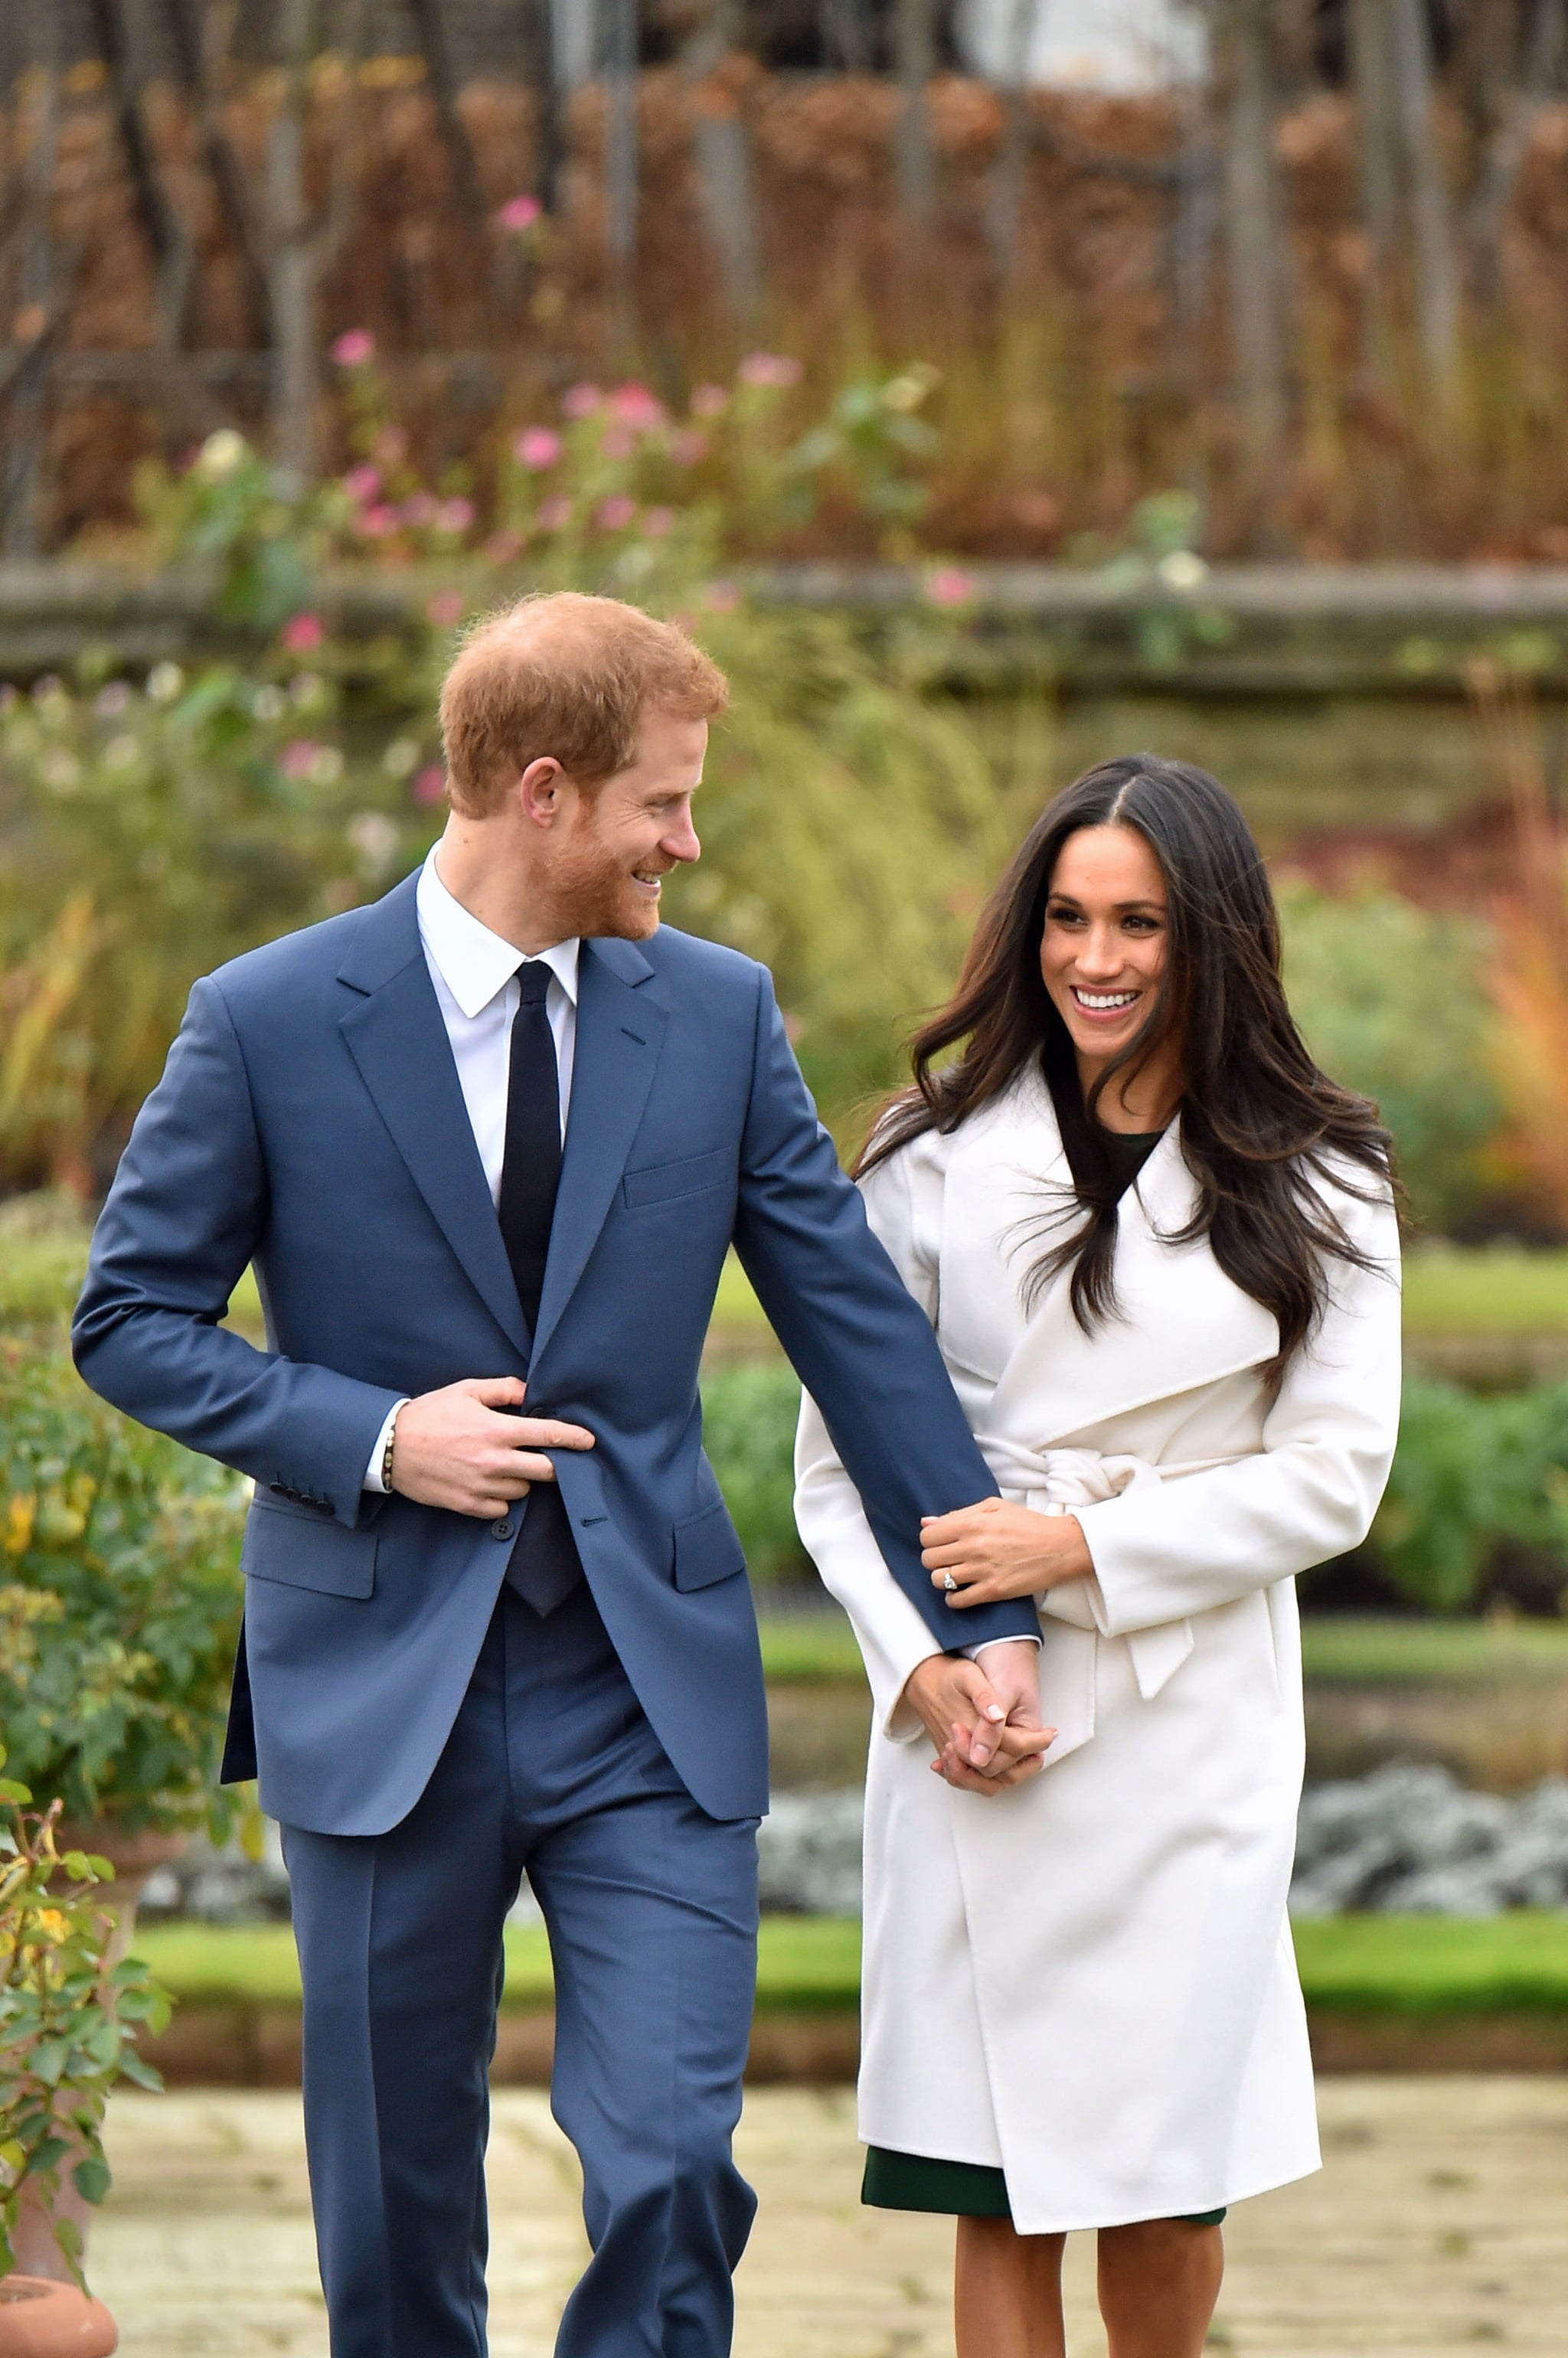 Prince Harry and Meghan Markle in the Sunken Garden at Kensington Palace, London, after the announcement of their engagement. (Photo by Dominic Lipinski/PA Images via Getty Images)